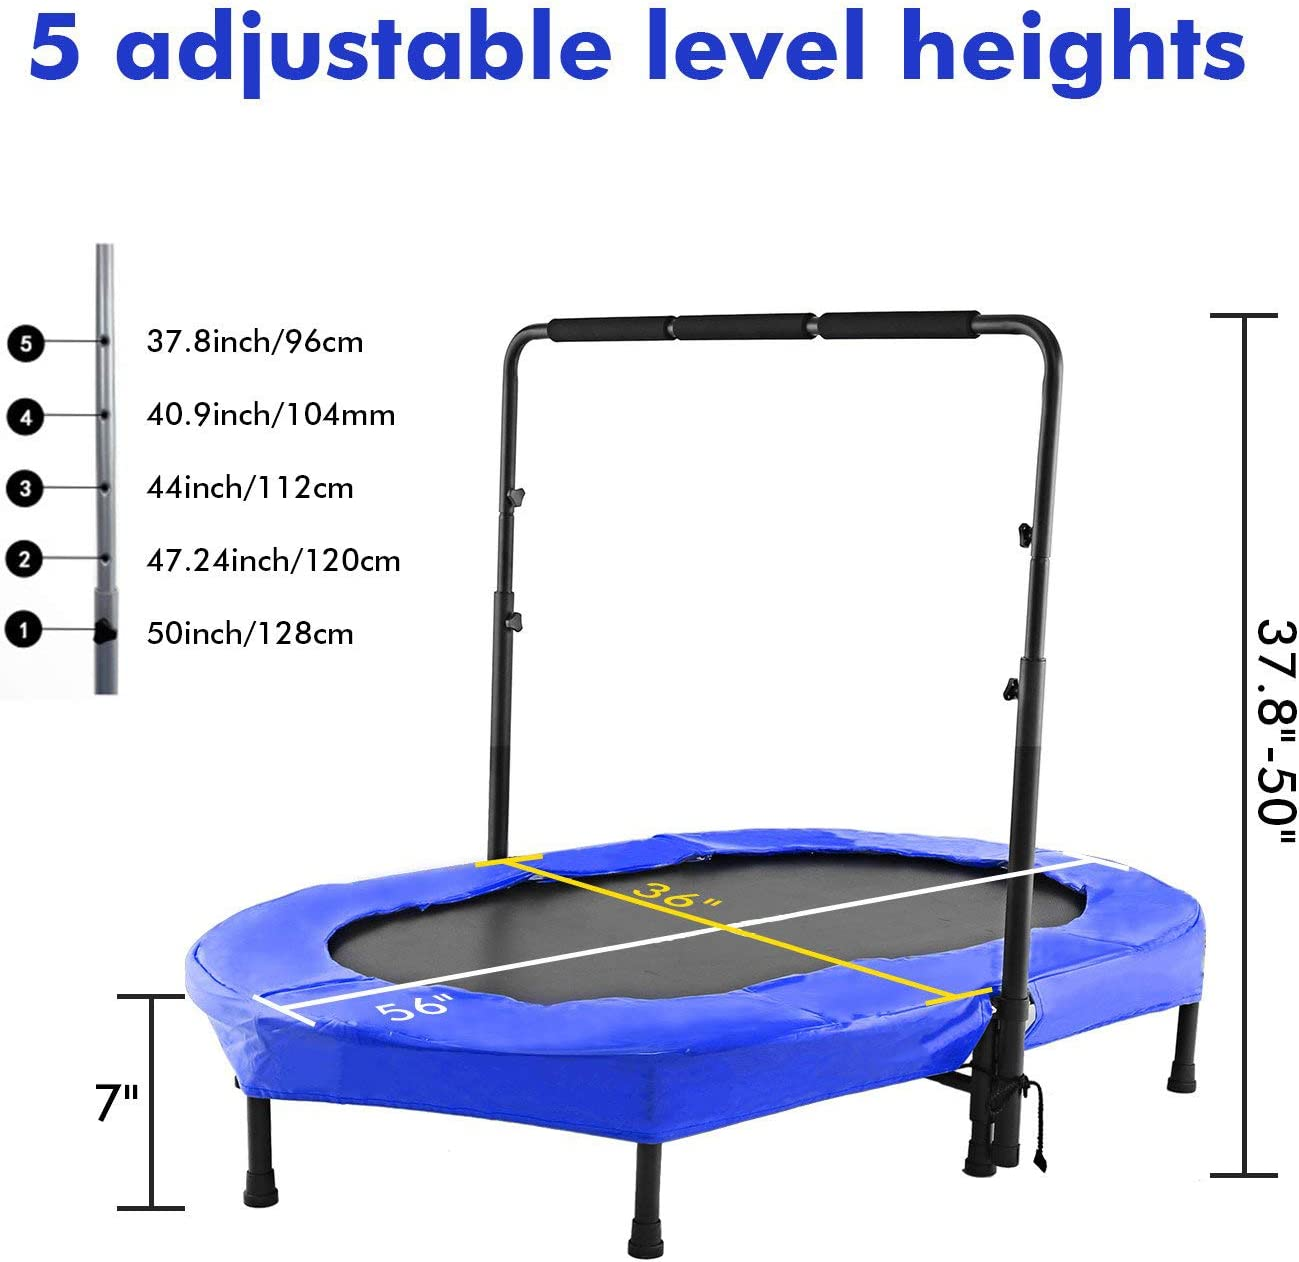 Hosmat Rebounders Mini Trampoline for Adults or Kids with Adjustable Handle Bar, Parent-Child Twins Trampoline Max. Load 220LBS